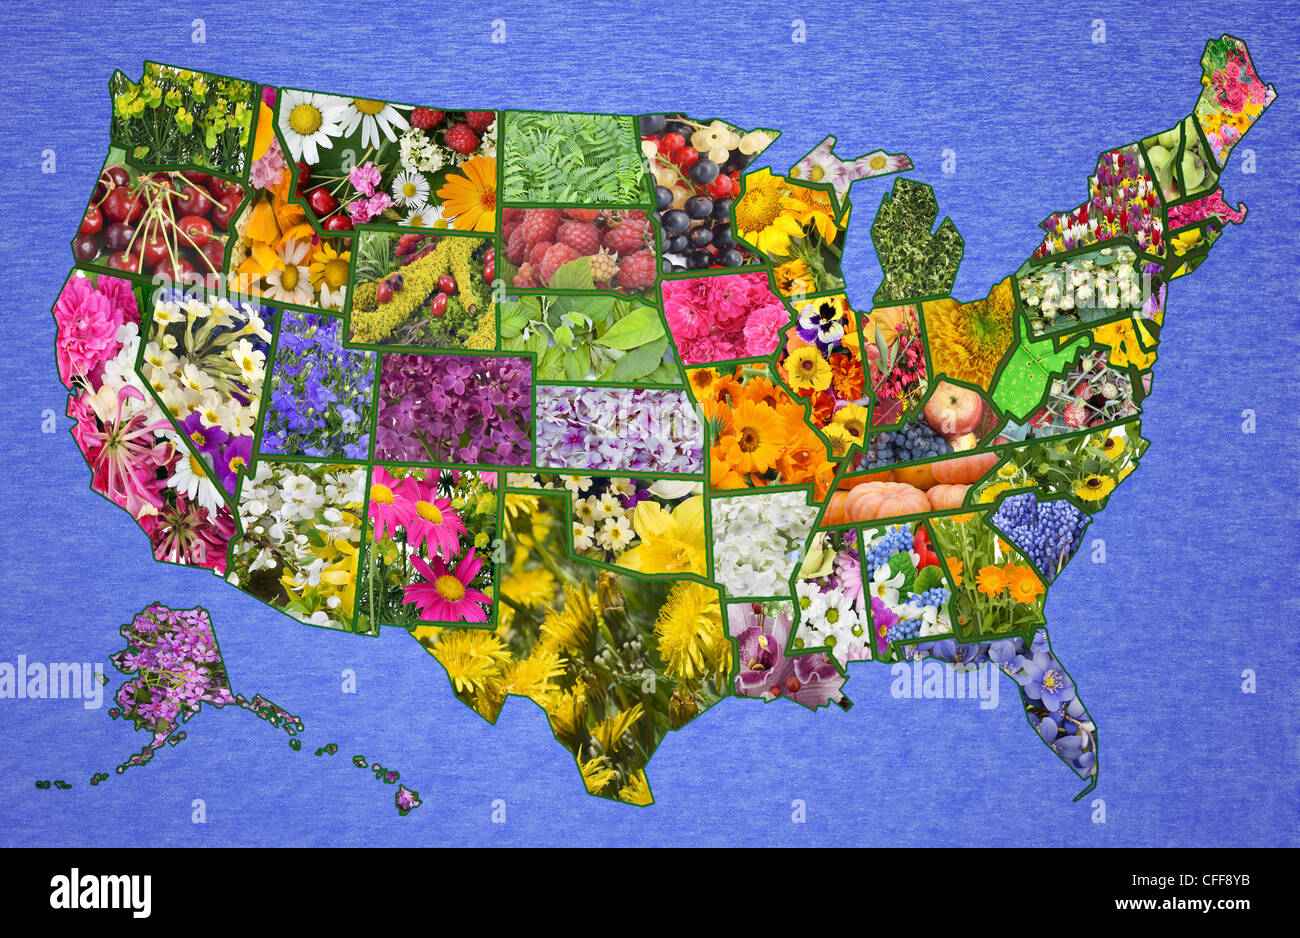 USA American High Resolution Map From Flowers And Plants Great - Usa map high resolution